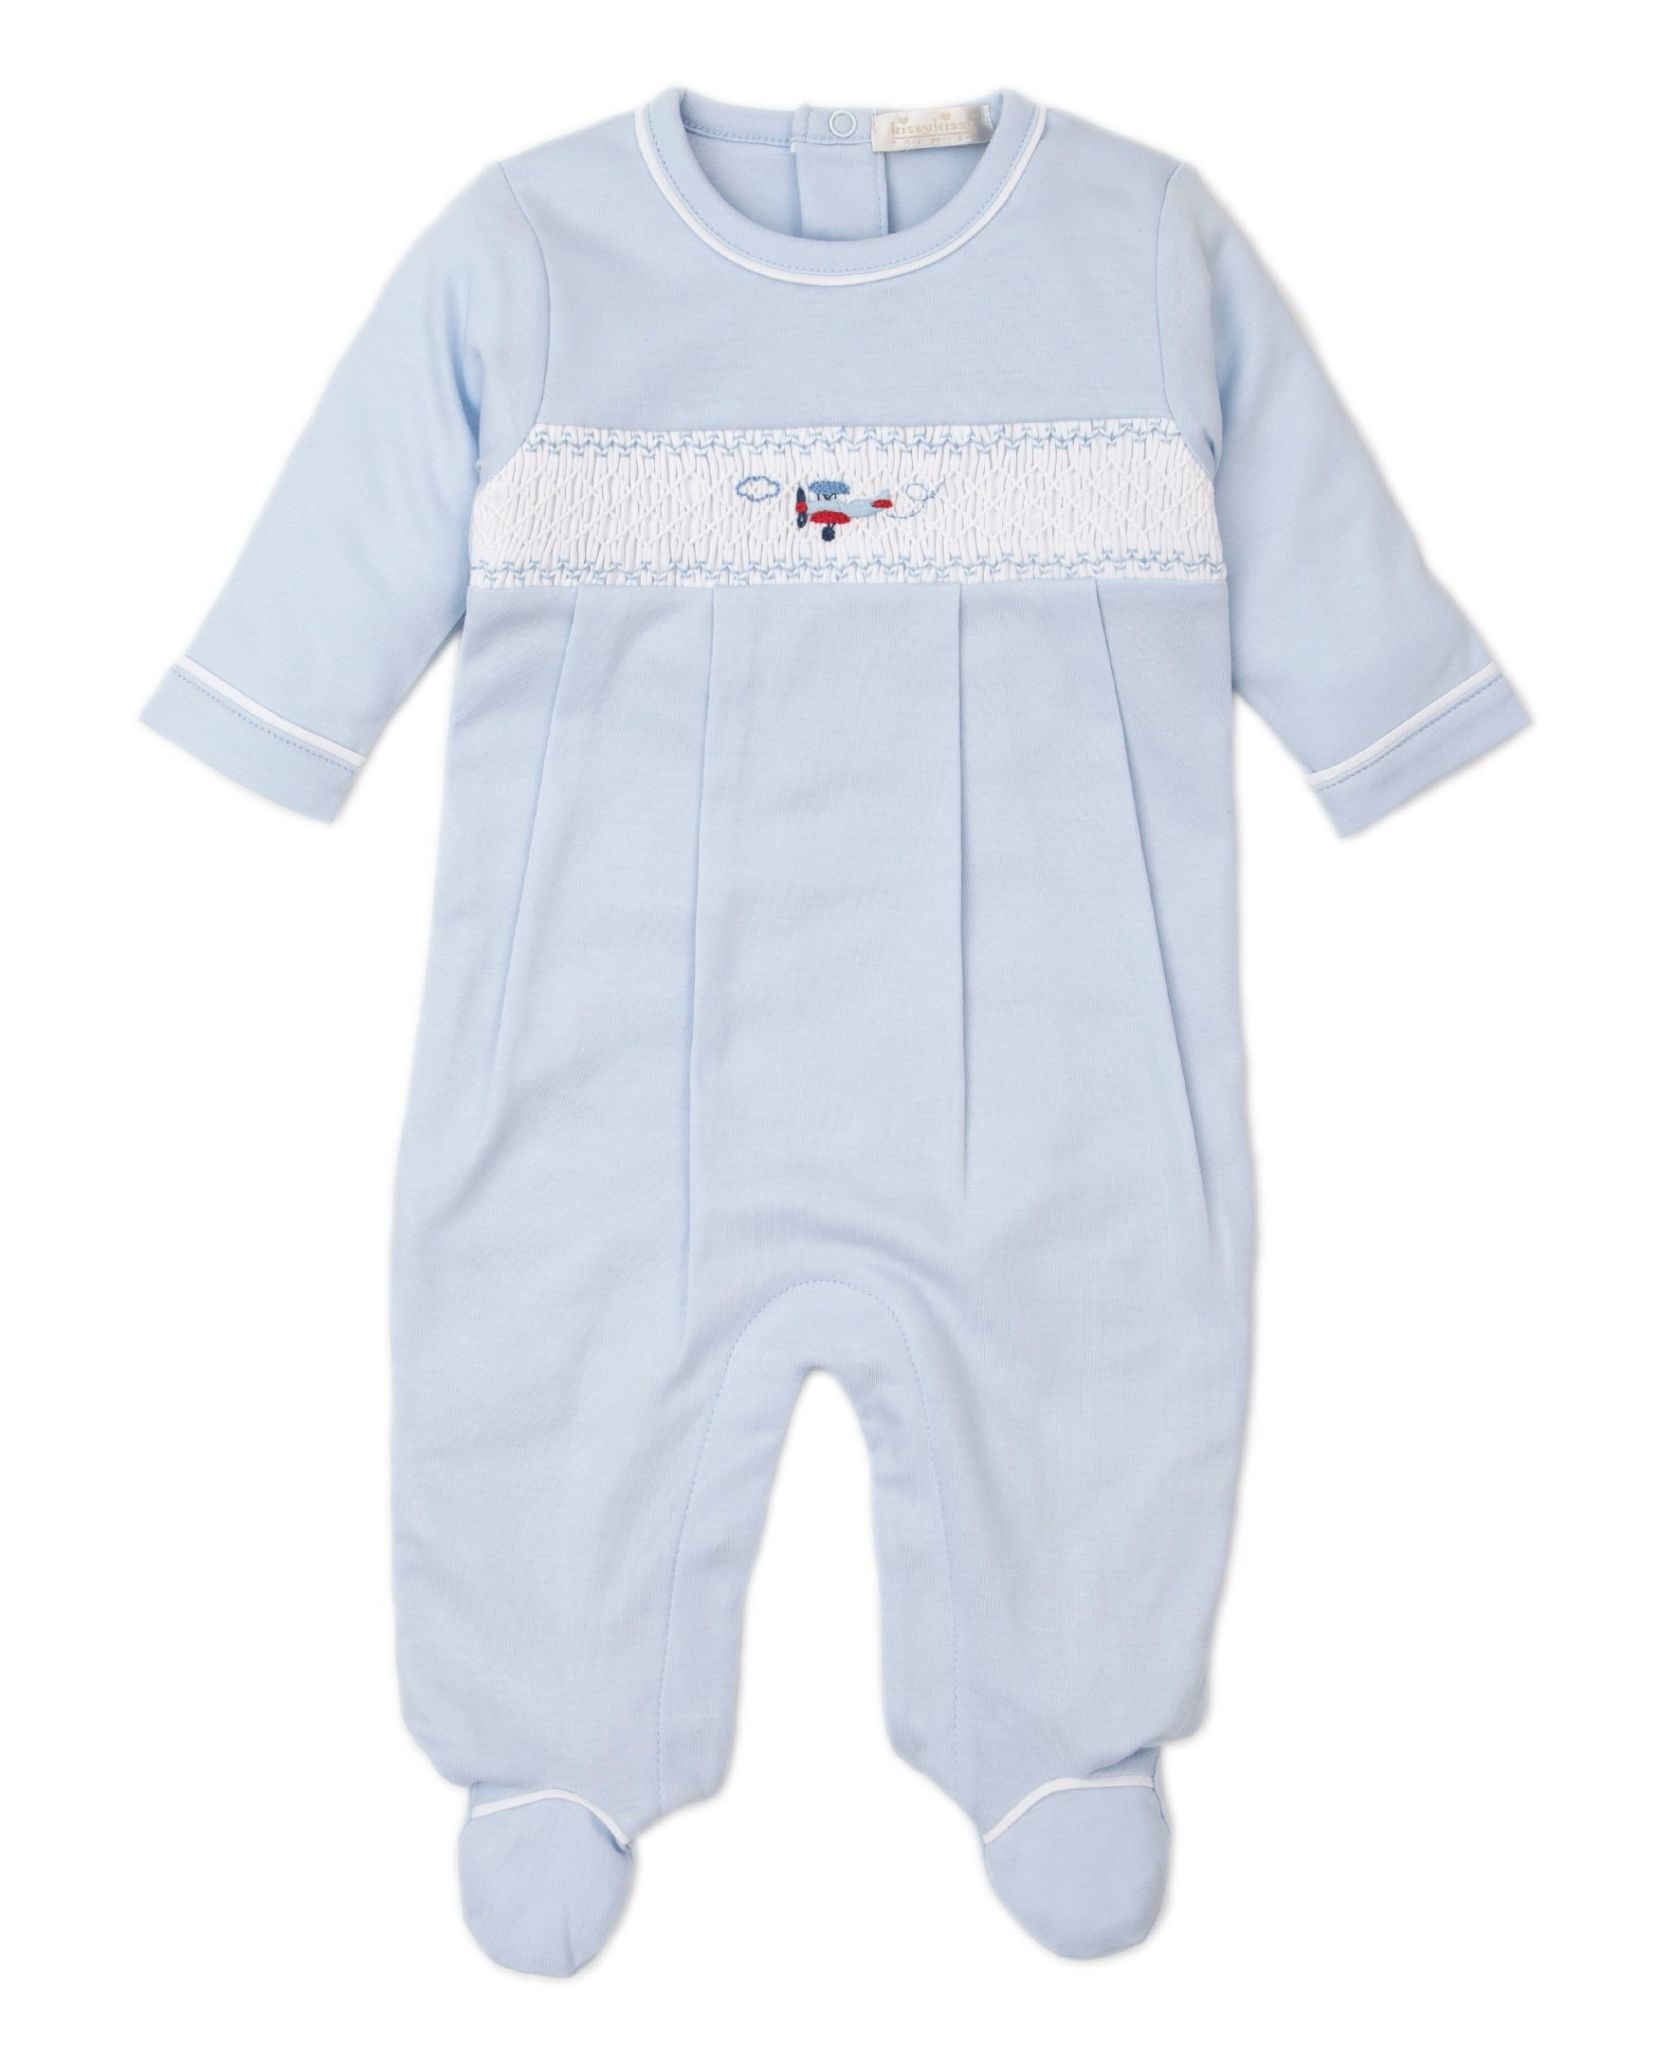 Kissy Kissy Embroidered Plane Footie